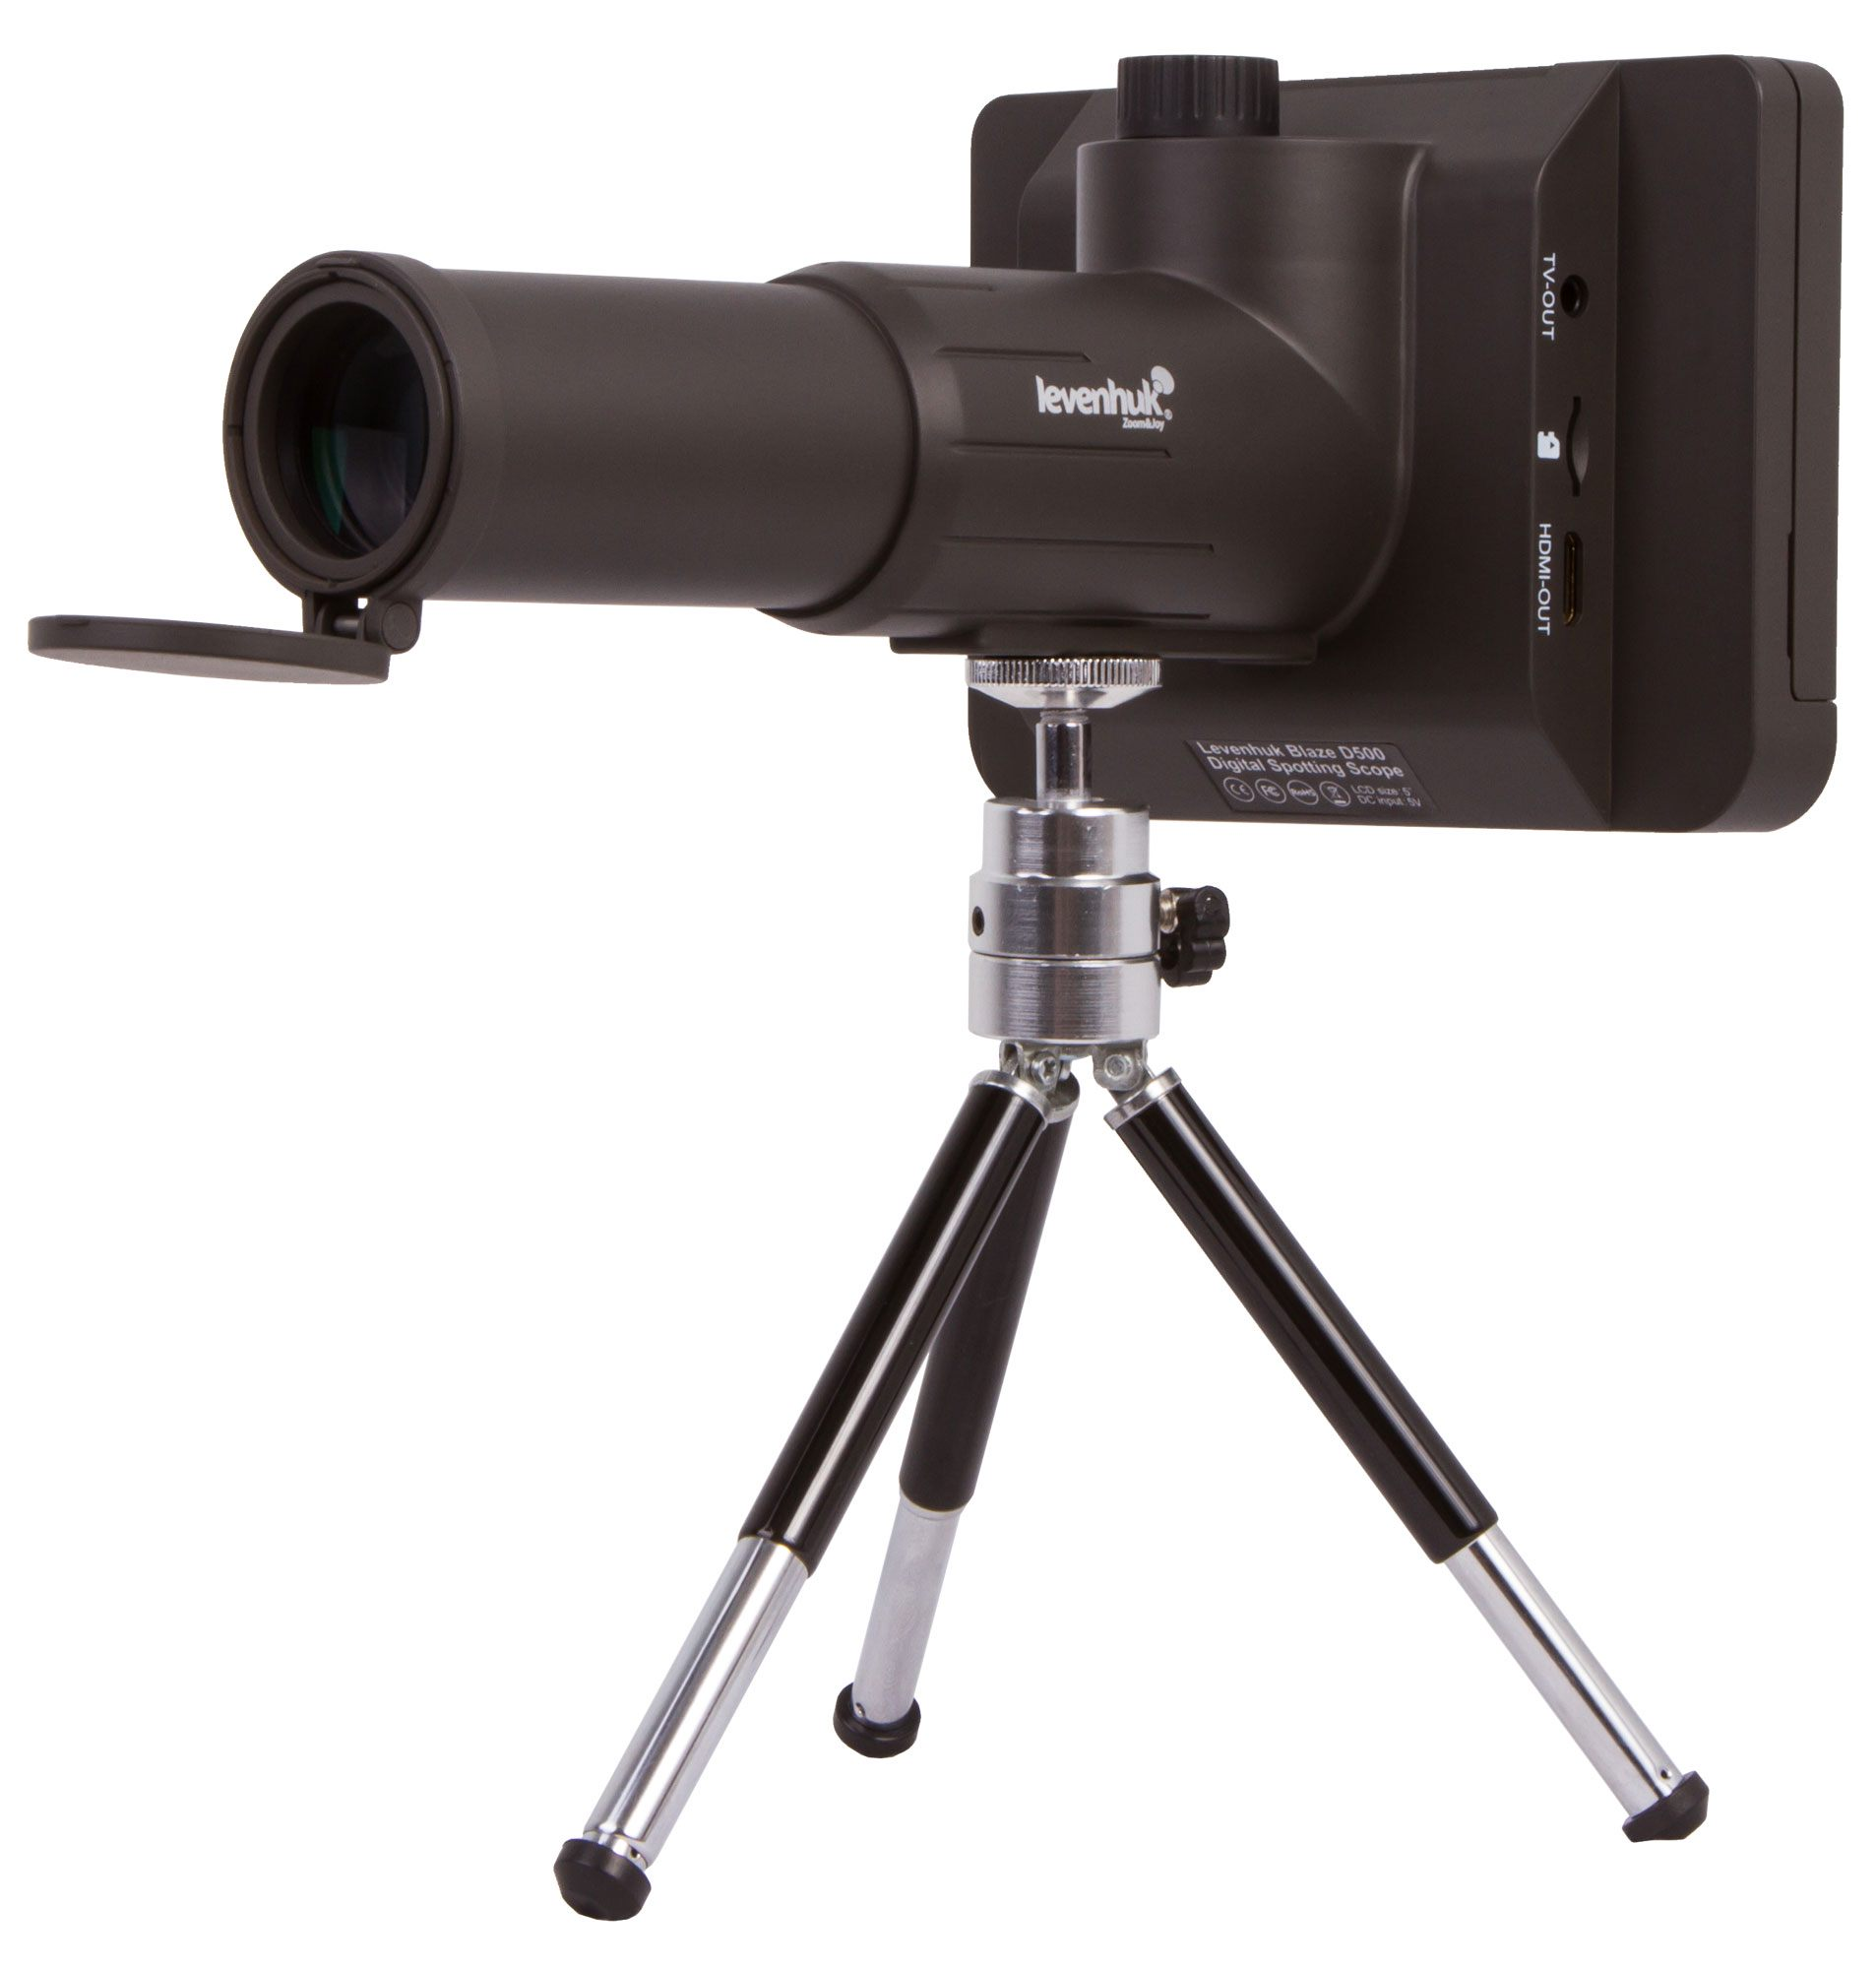 Levenhuk Blaze D500 Digital Spotting Scope image